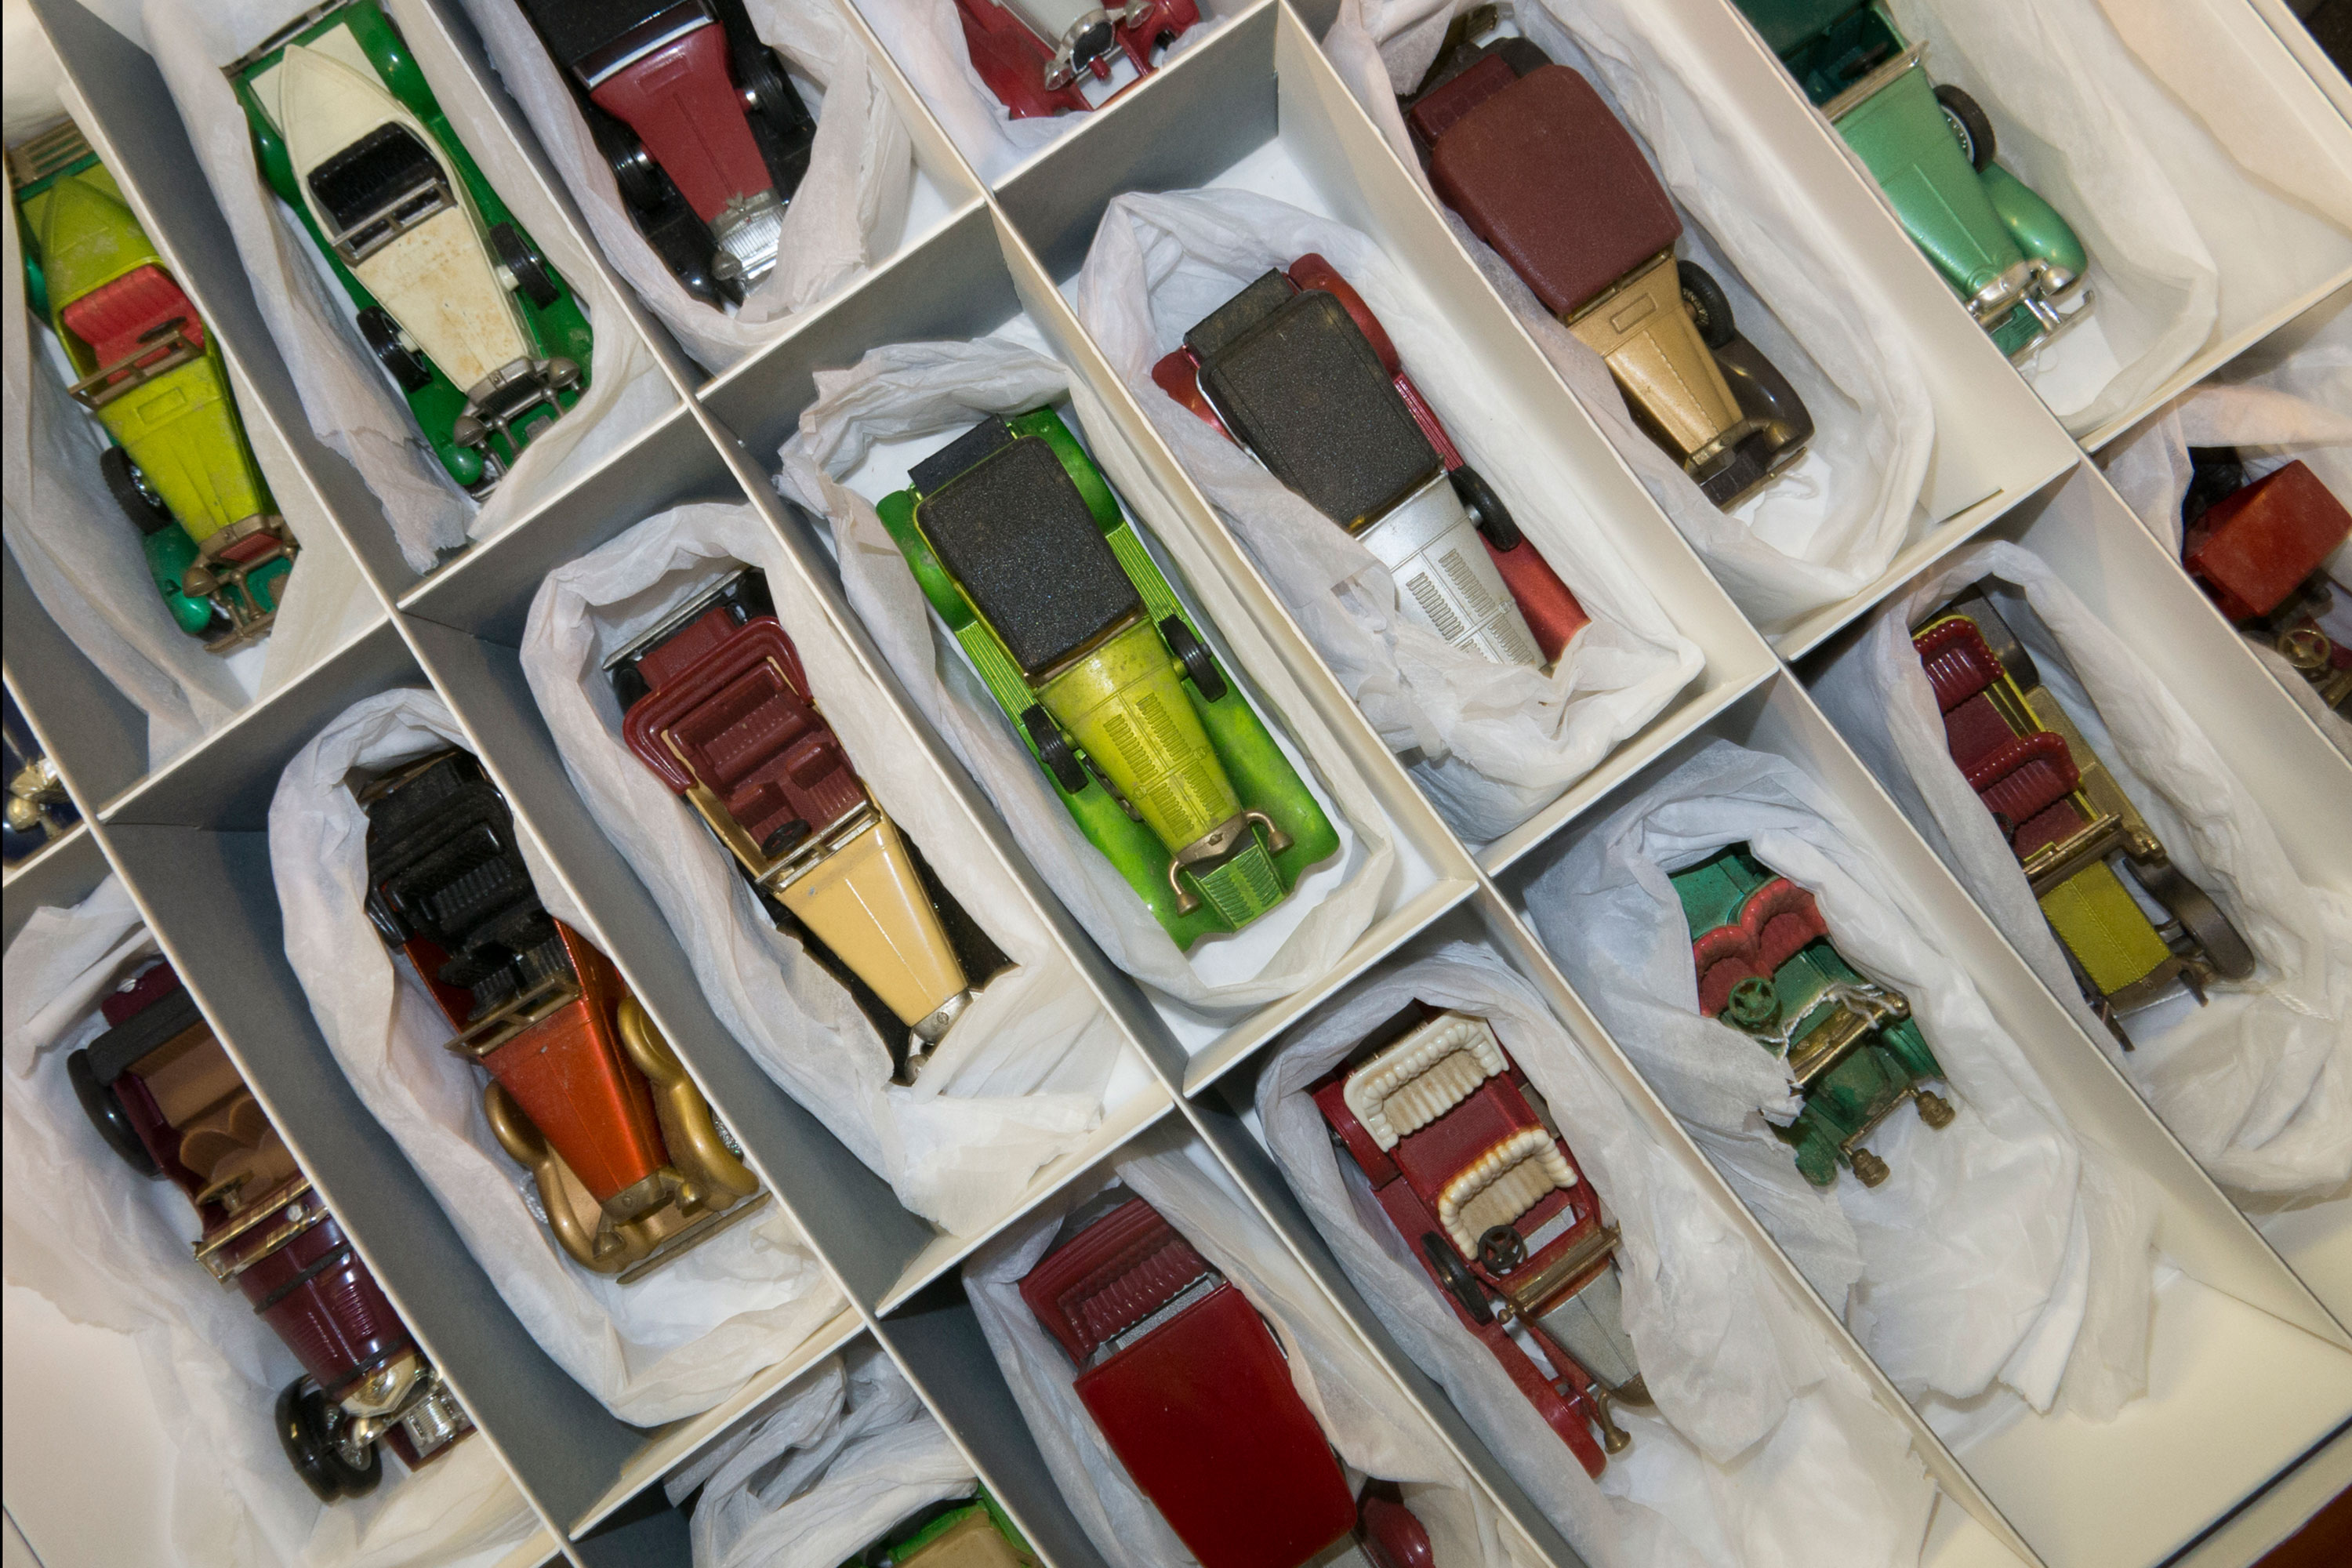 Old model cars in storage boxes at the National Motor Museum